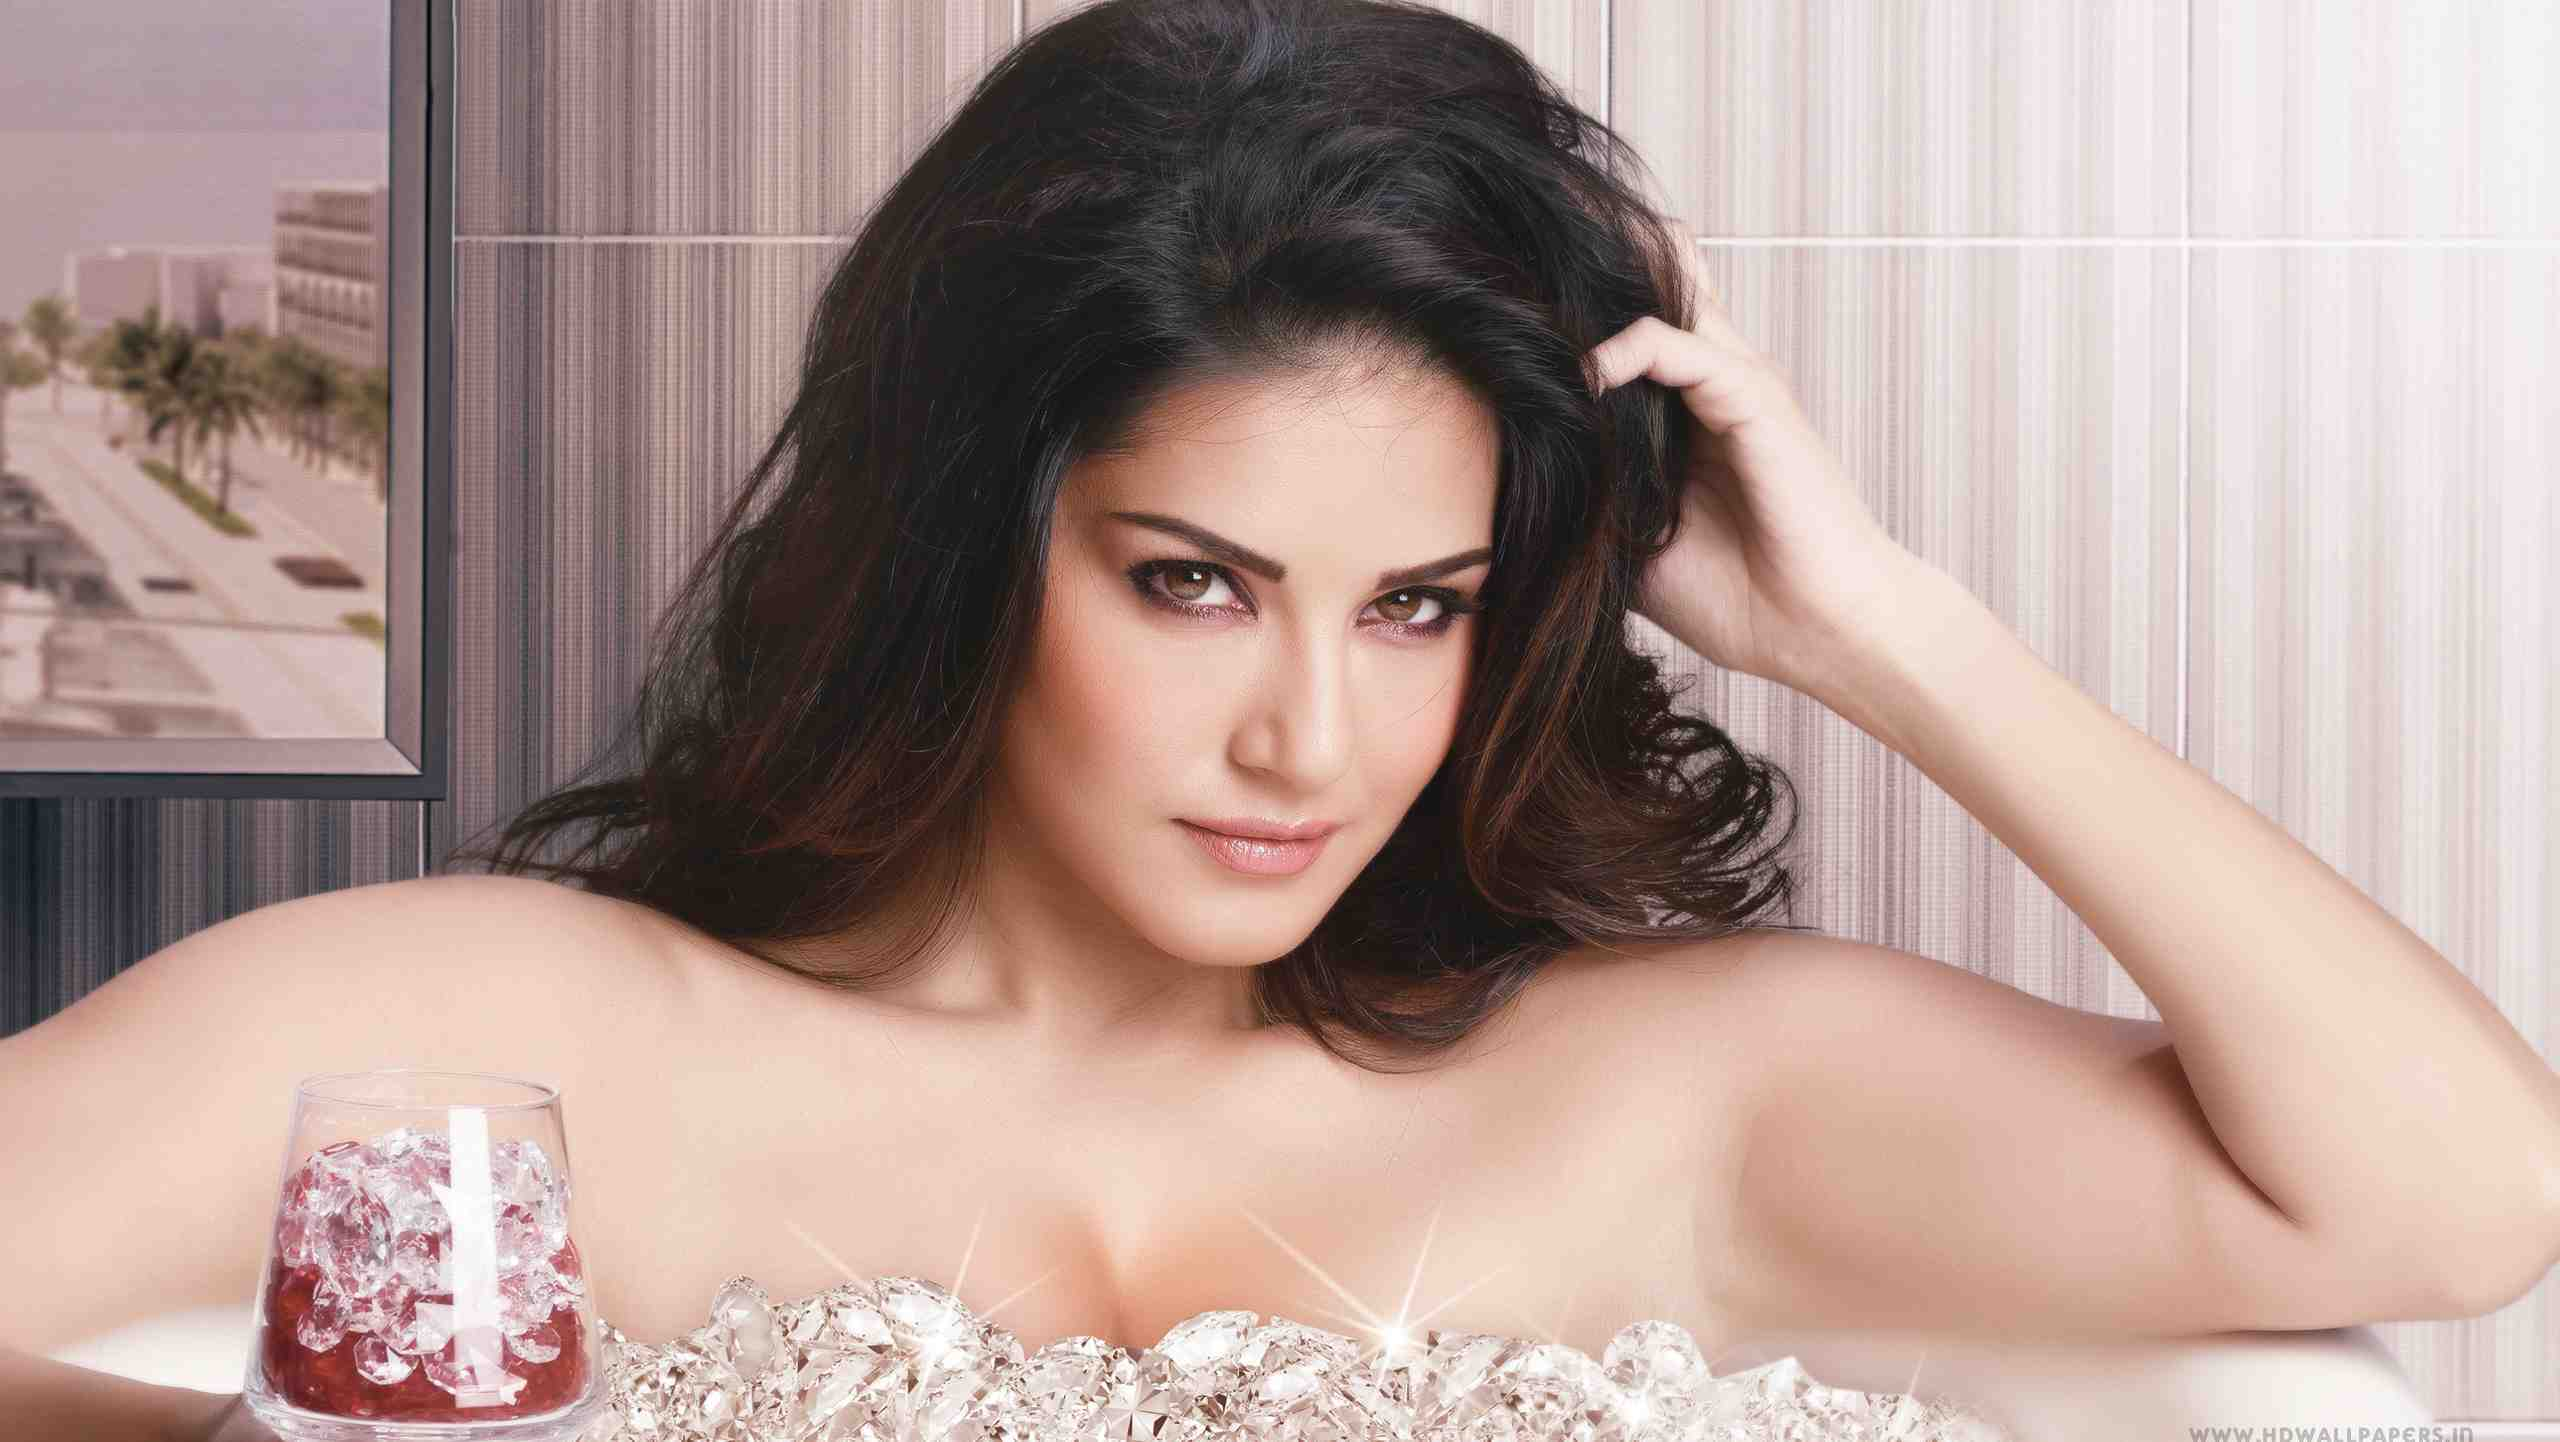 Transformation Of Sunny Leone From An Adult Star To A Mother Of Three